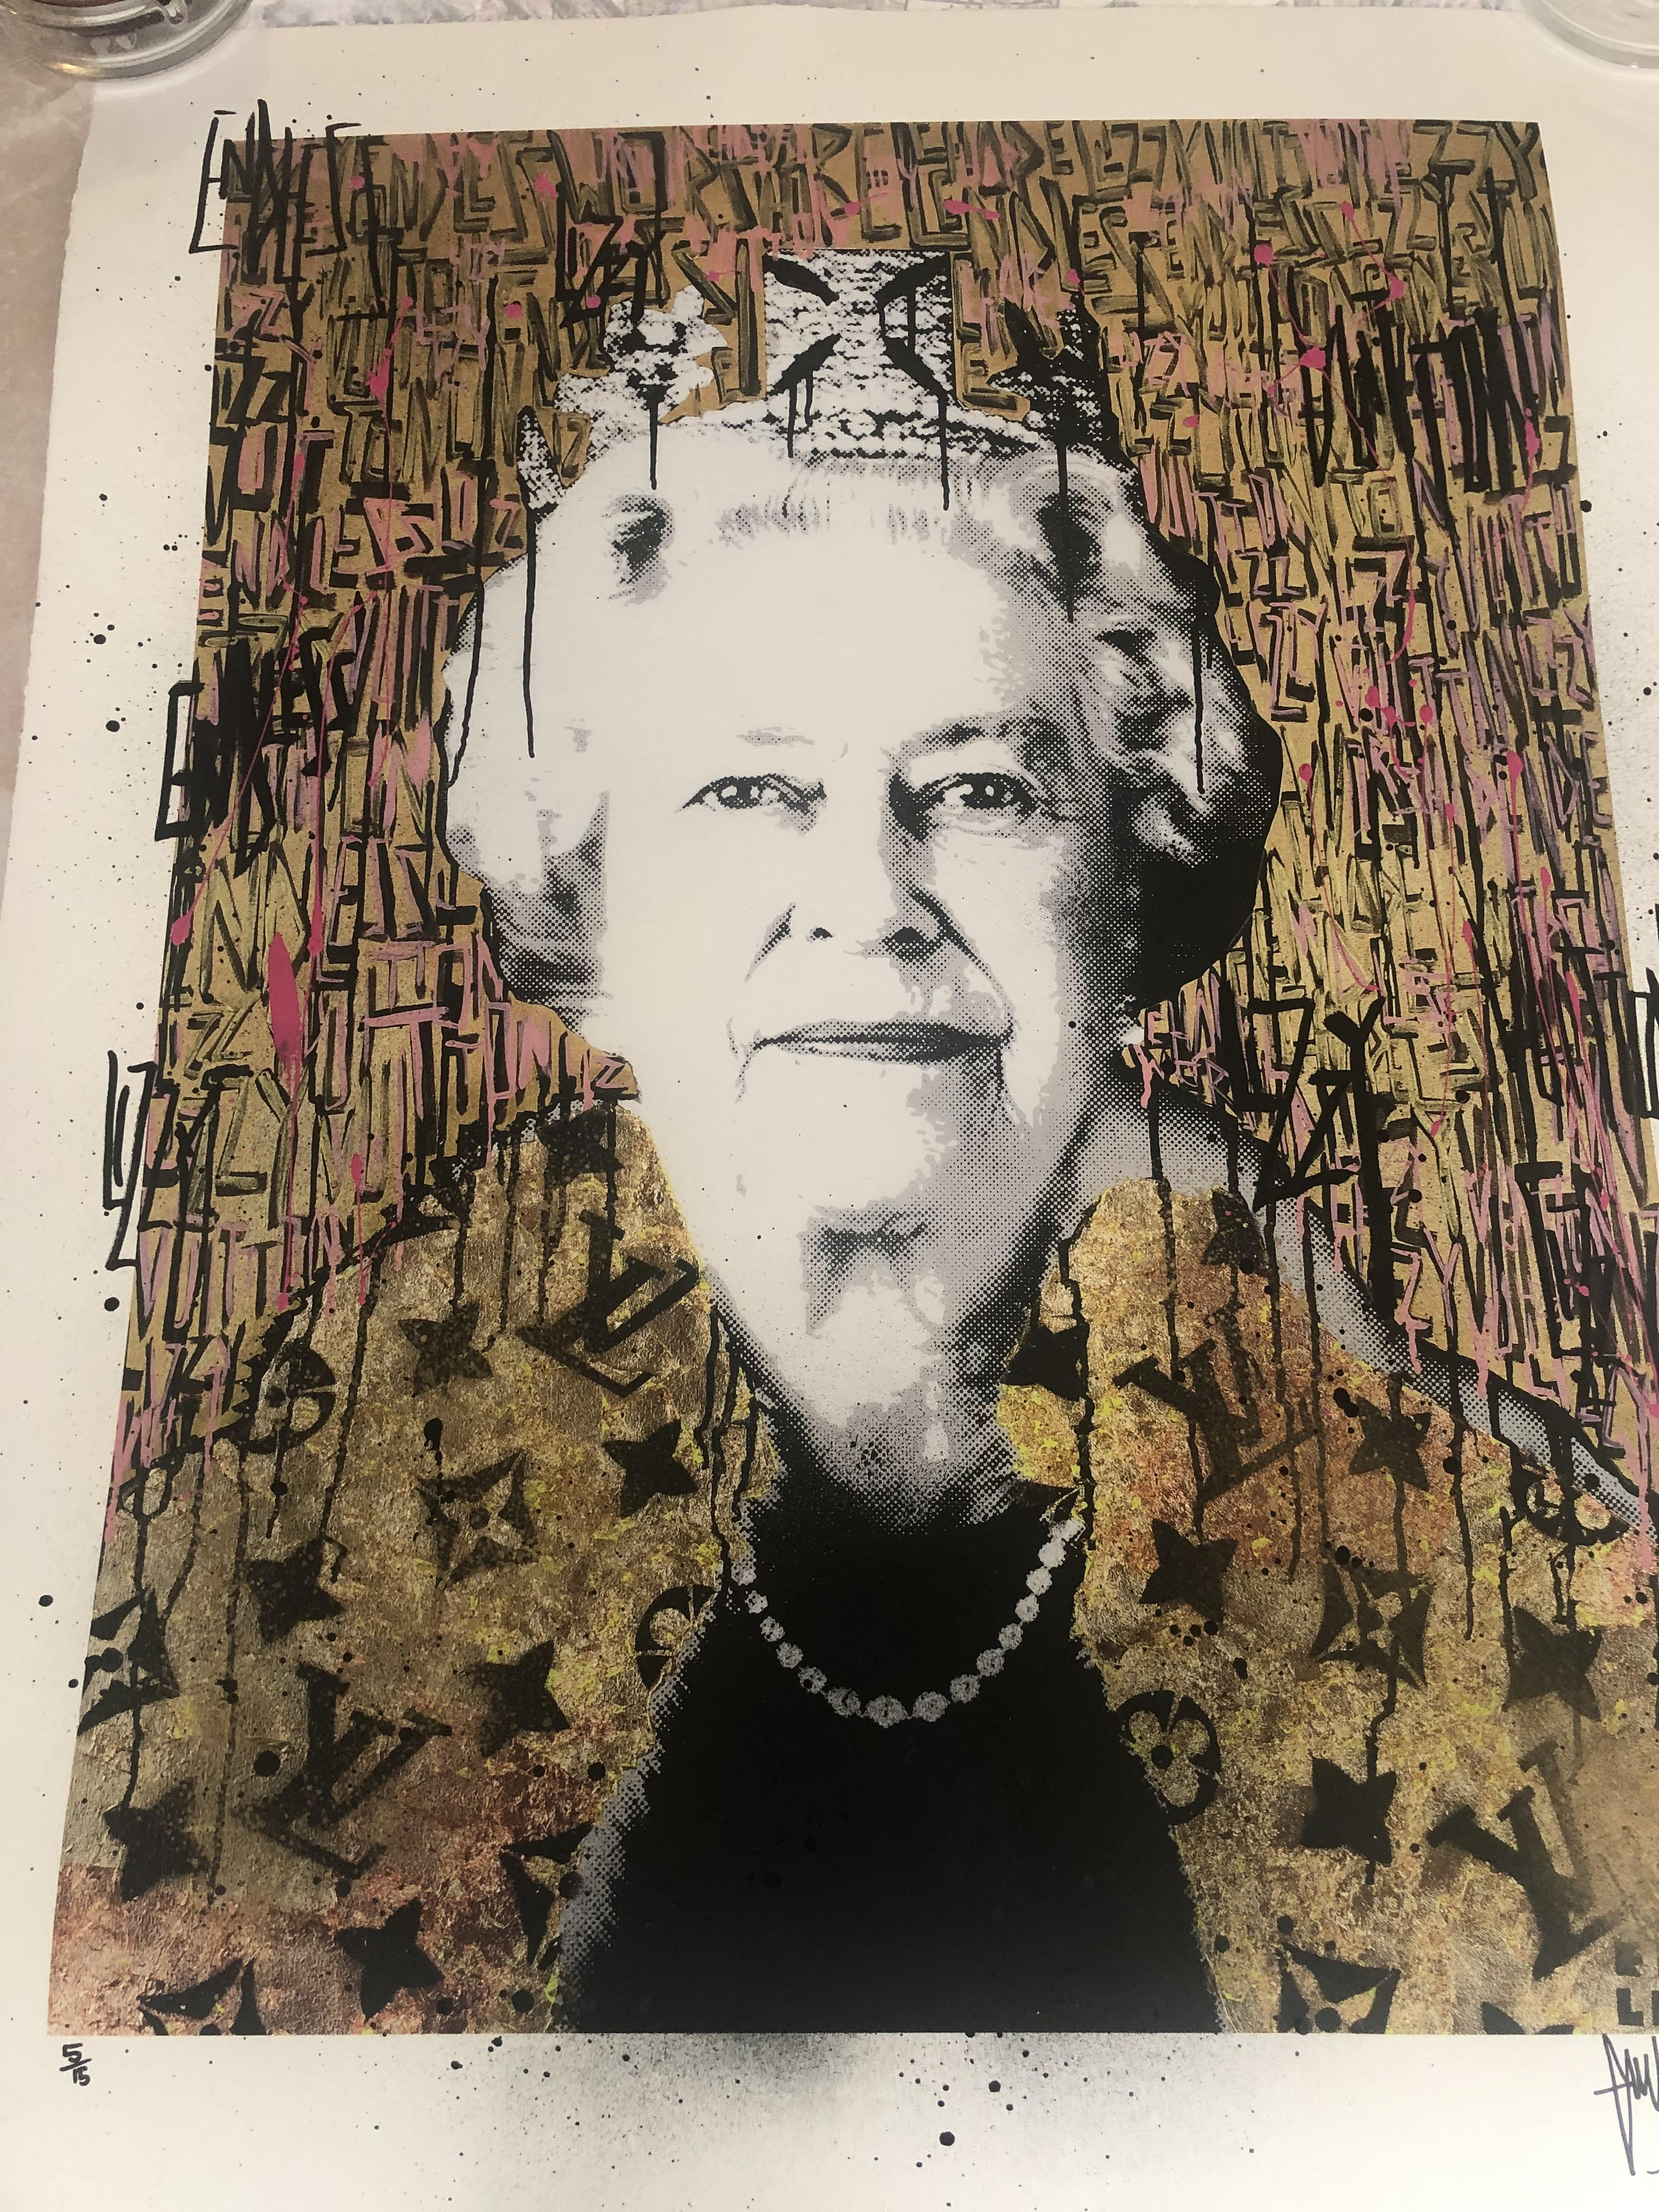 Lot 6 - Endless Artist Limited Edition Print, Lizzy Vuitton Cost £2000